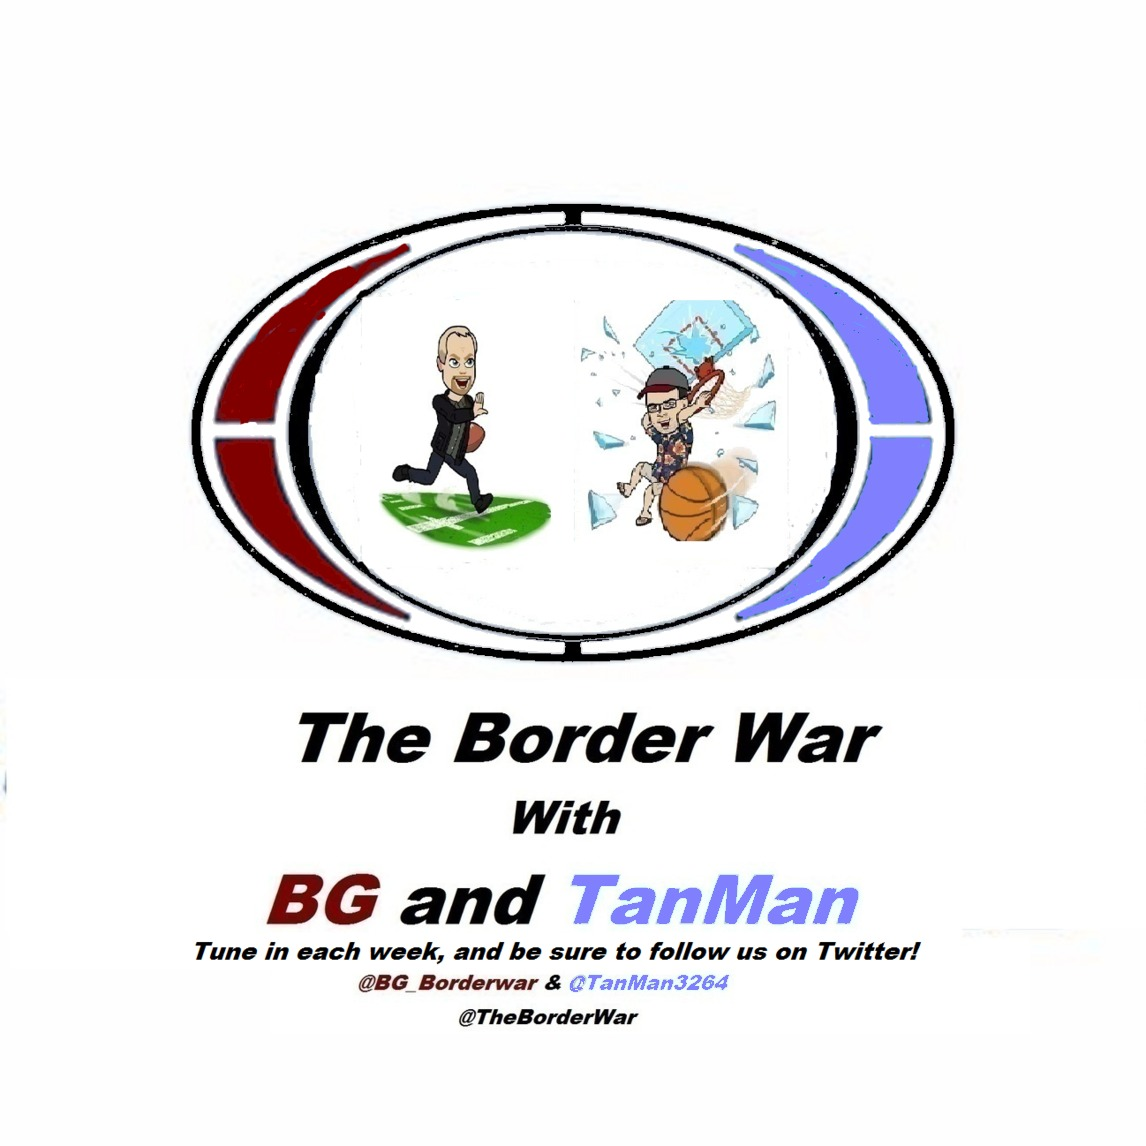 Partner Announcement - The Border War